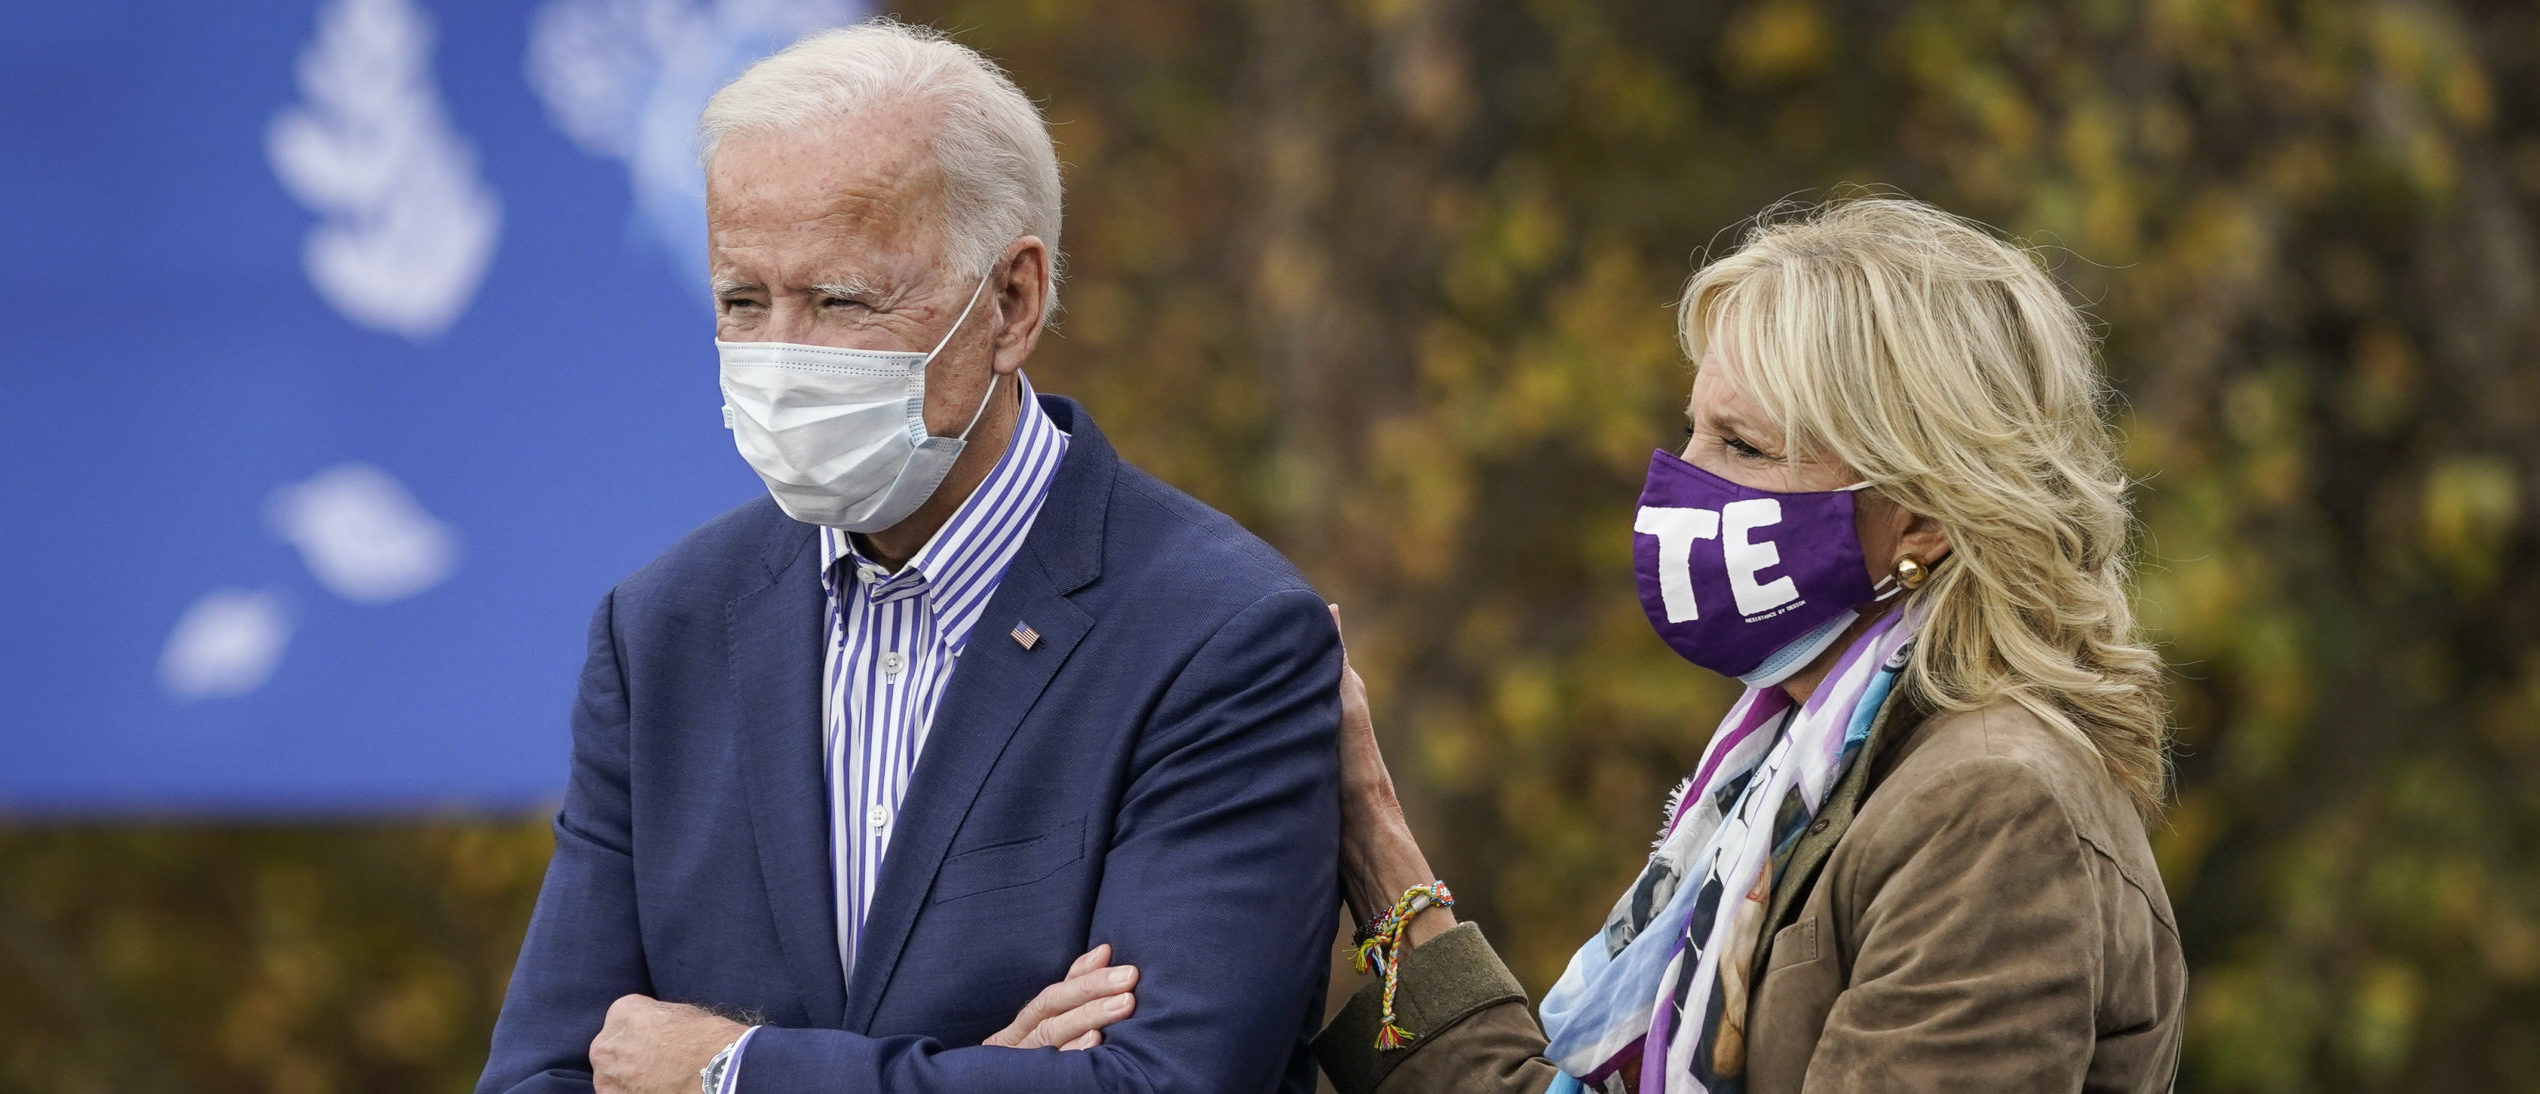 BRISTOL, PA - OCTOBER 24: Democratic presidential nominee Joe Biden stands with his wife Dr. Jill Biden before speaking at a drive-in campaign rally at Bucks County Community College on October 24, 2020 in Bristol, Pennsylvania. Biden is making two campaign stops in the battleground state of Pennsylvania on Saturday. (Photo by Drew Angerer/Getty Images)